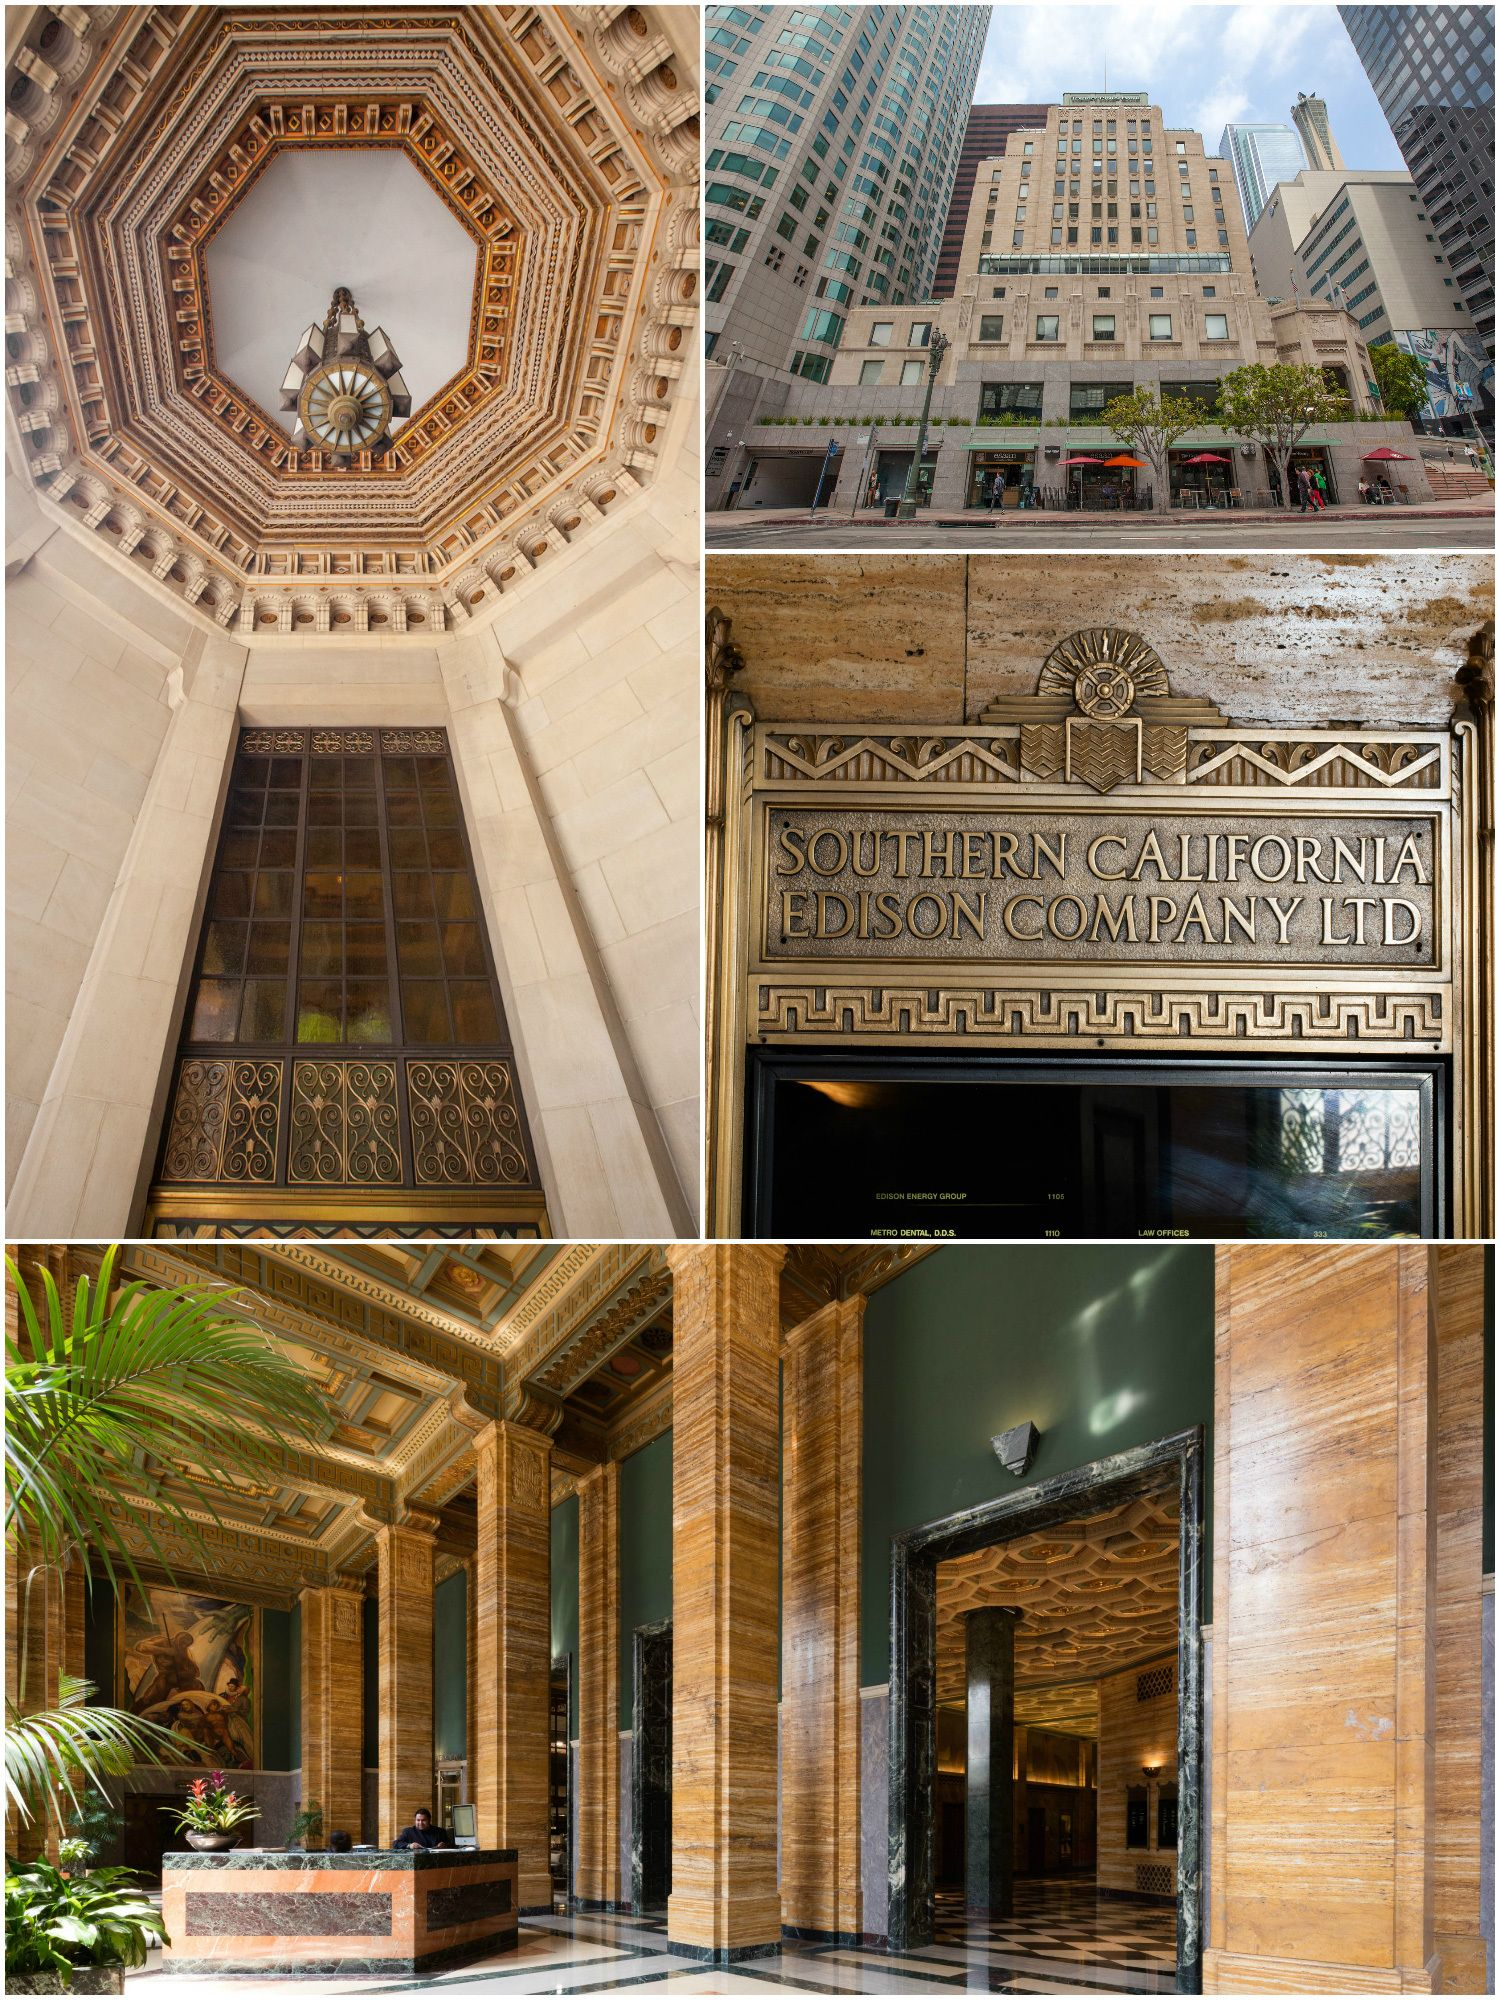 The Most Beautiful Art Deco Buildings In Los Angeles In 2020 Art Deco Buildings Art Deco Architecture Art Deco